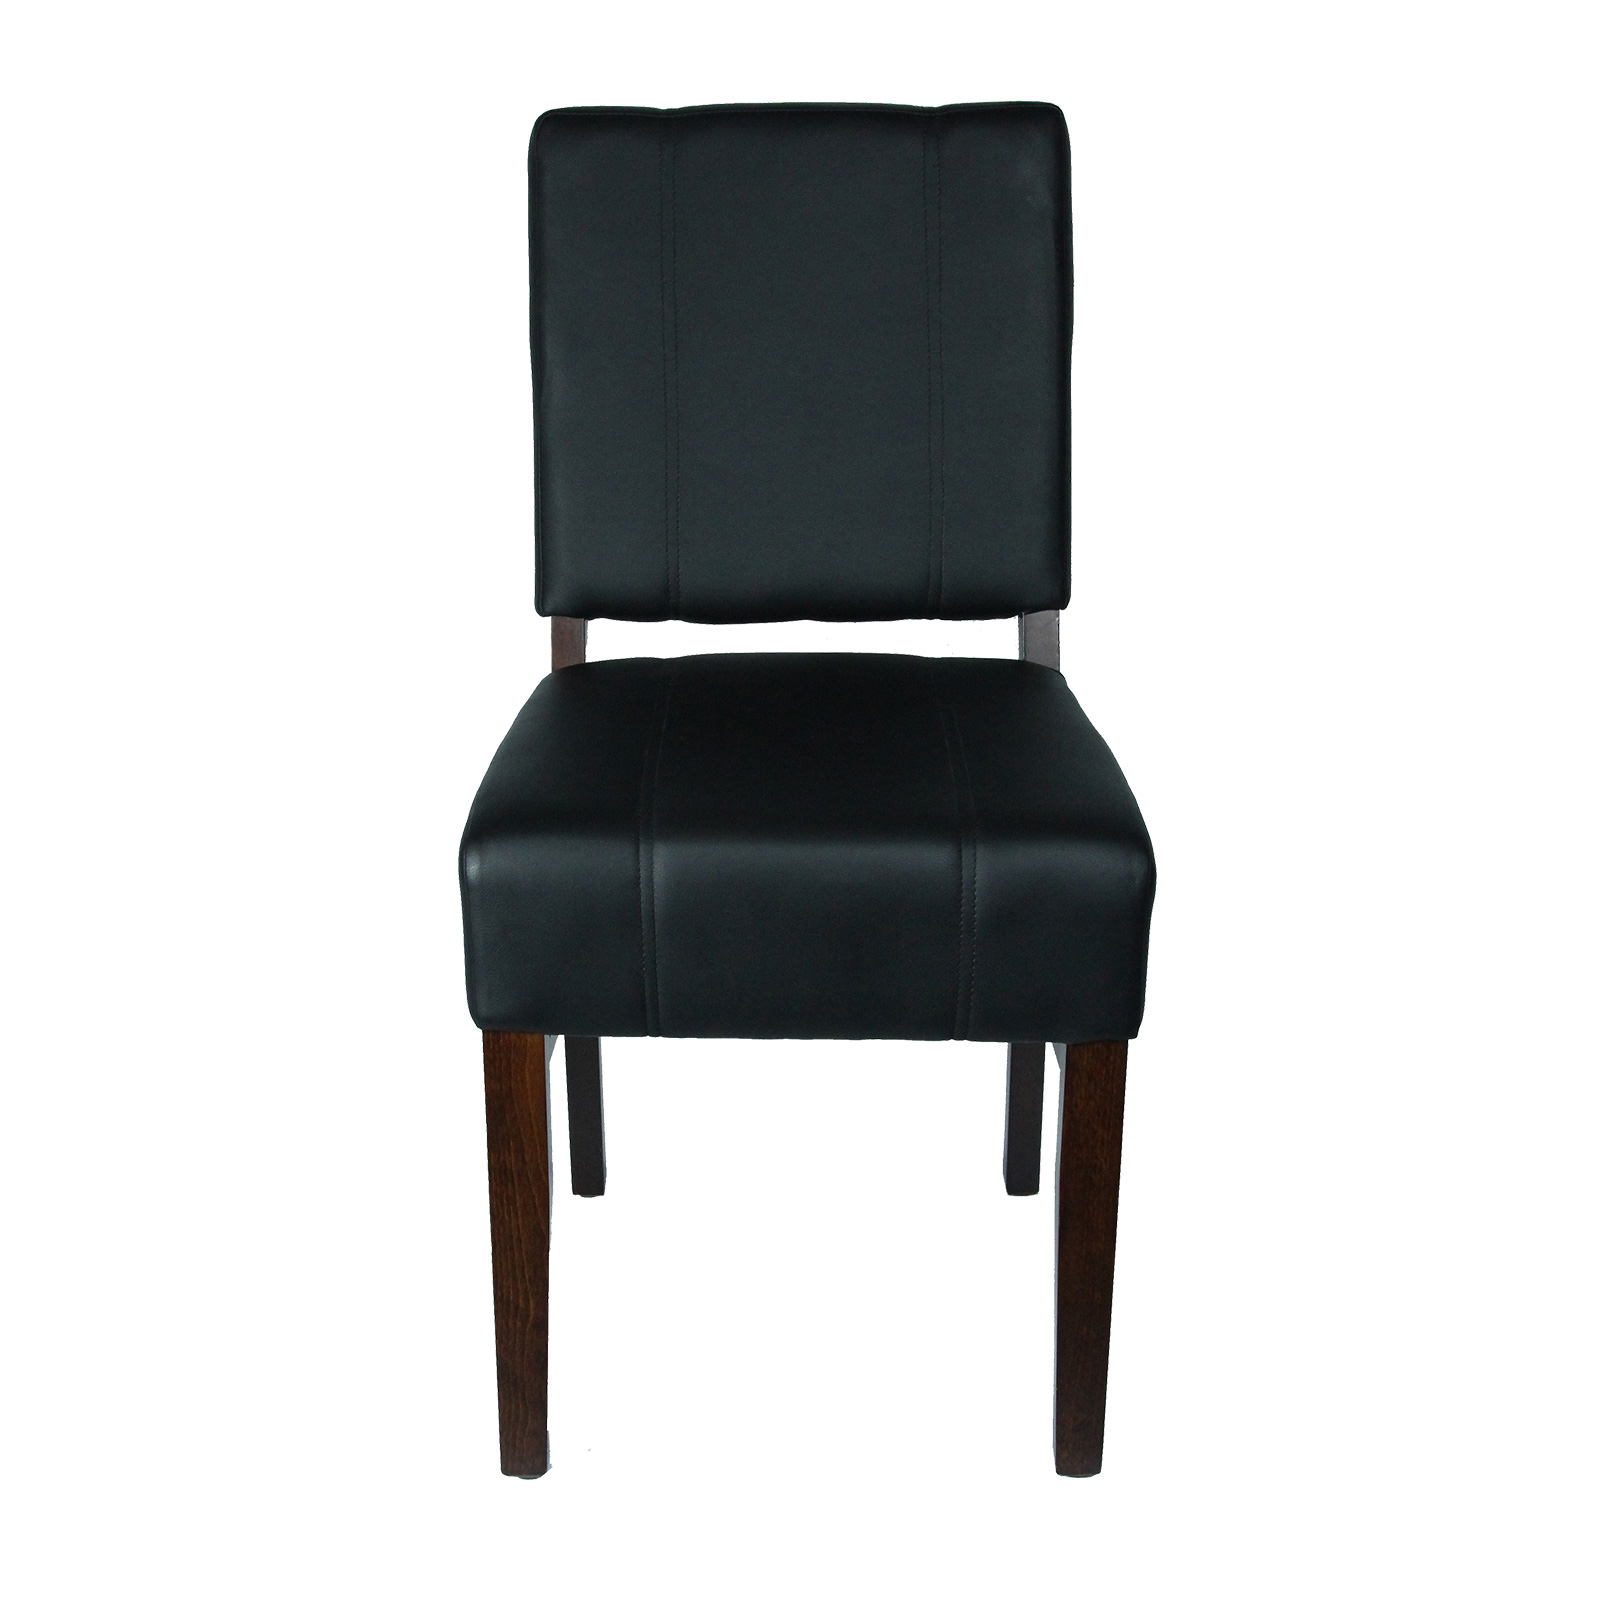 JustChair Manufacturing W53318-BLK chair, side, indoor